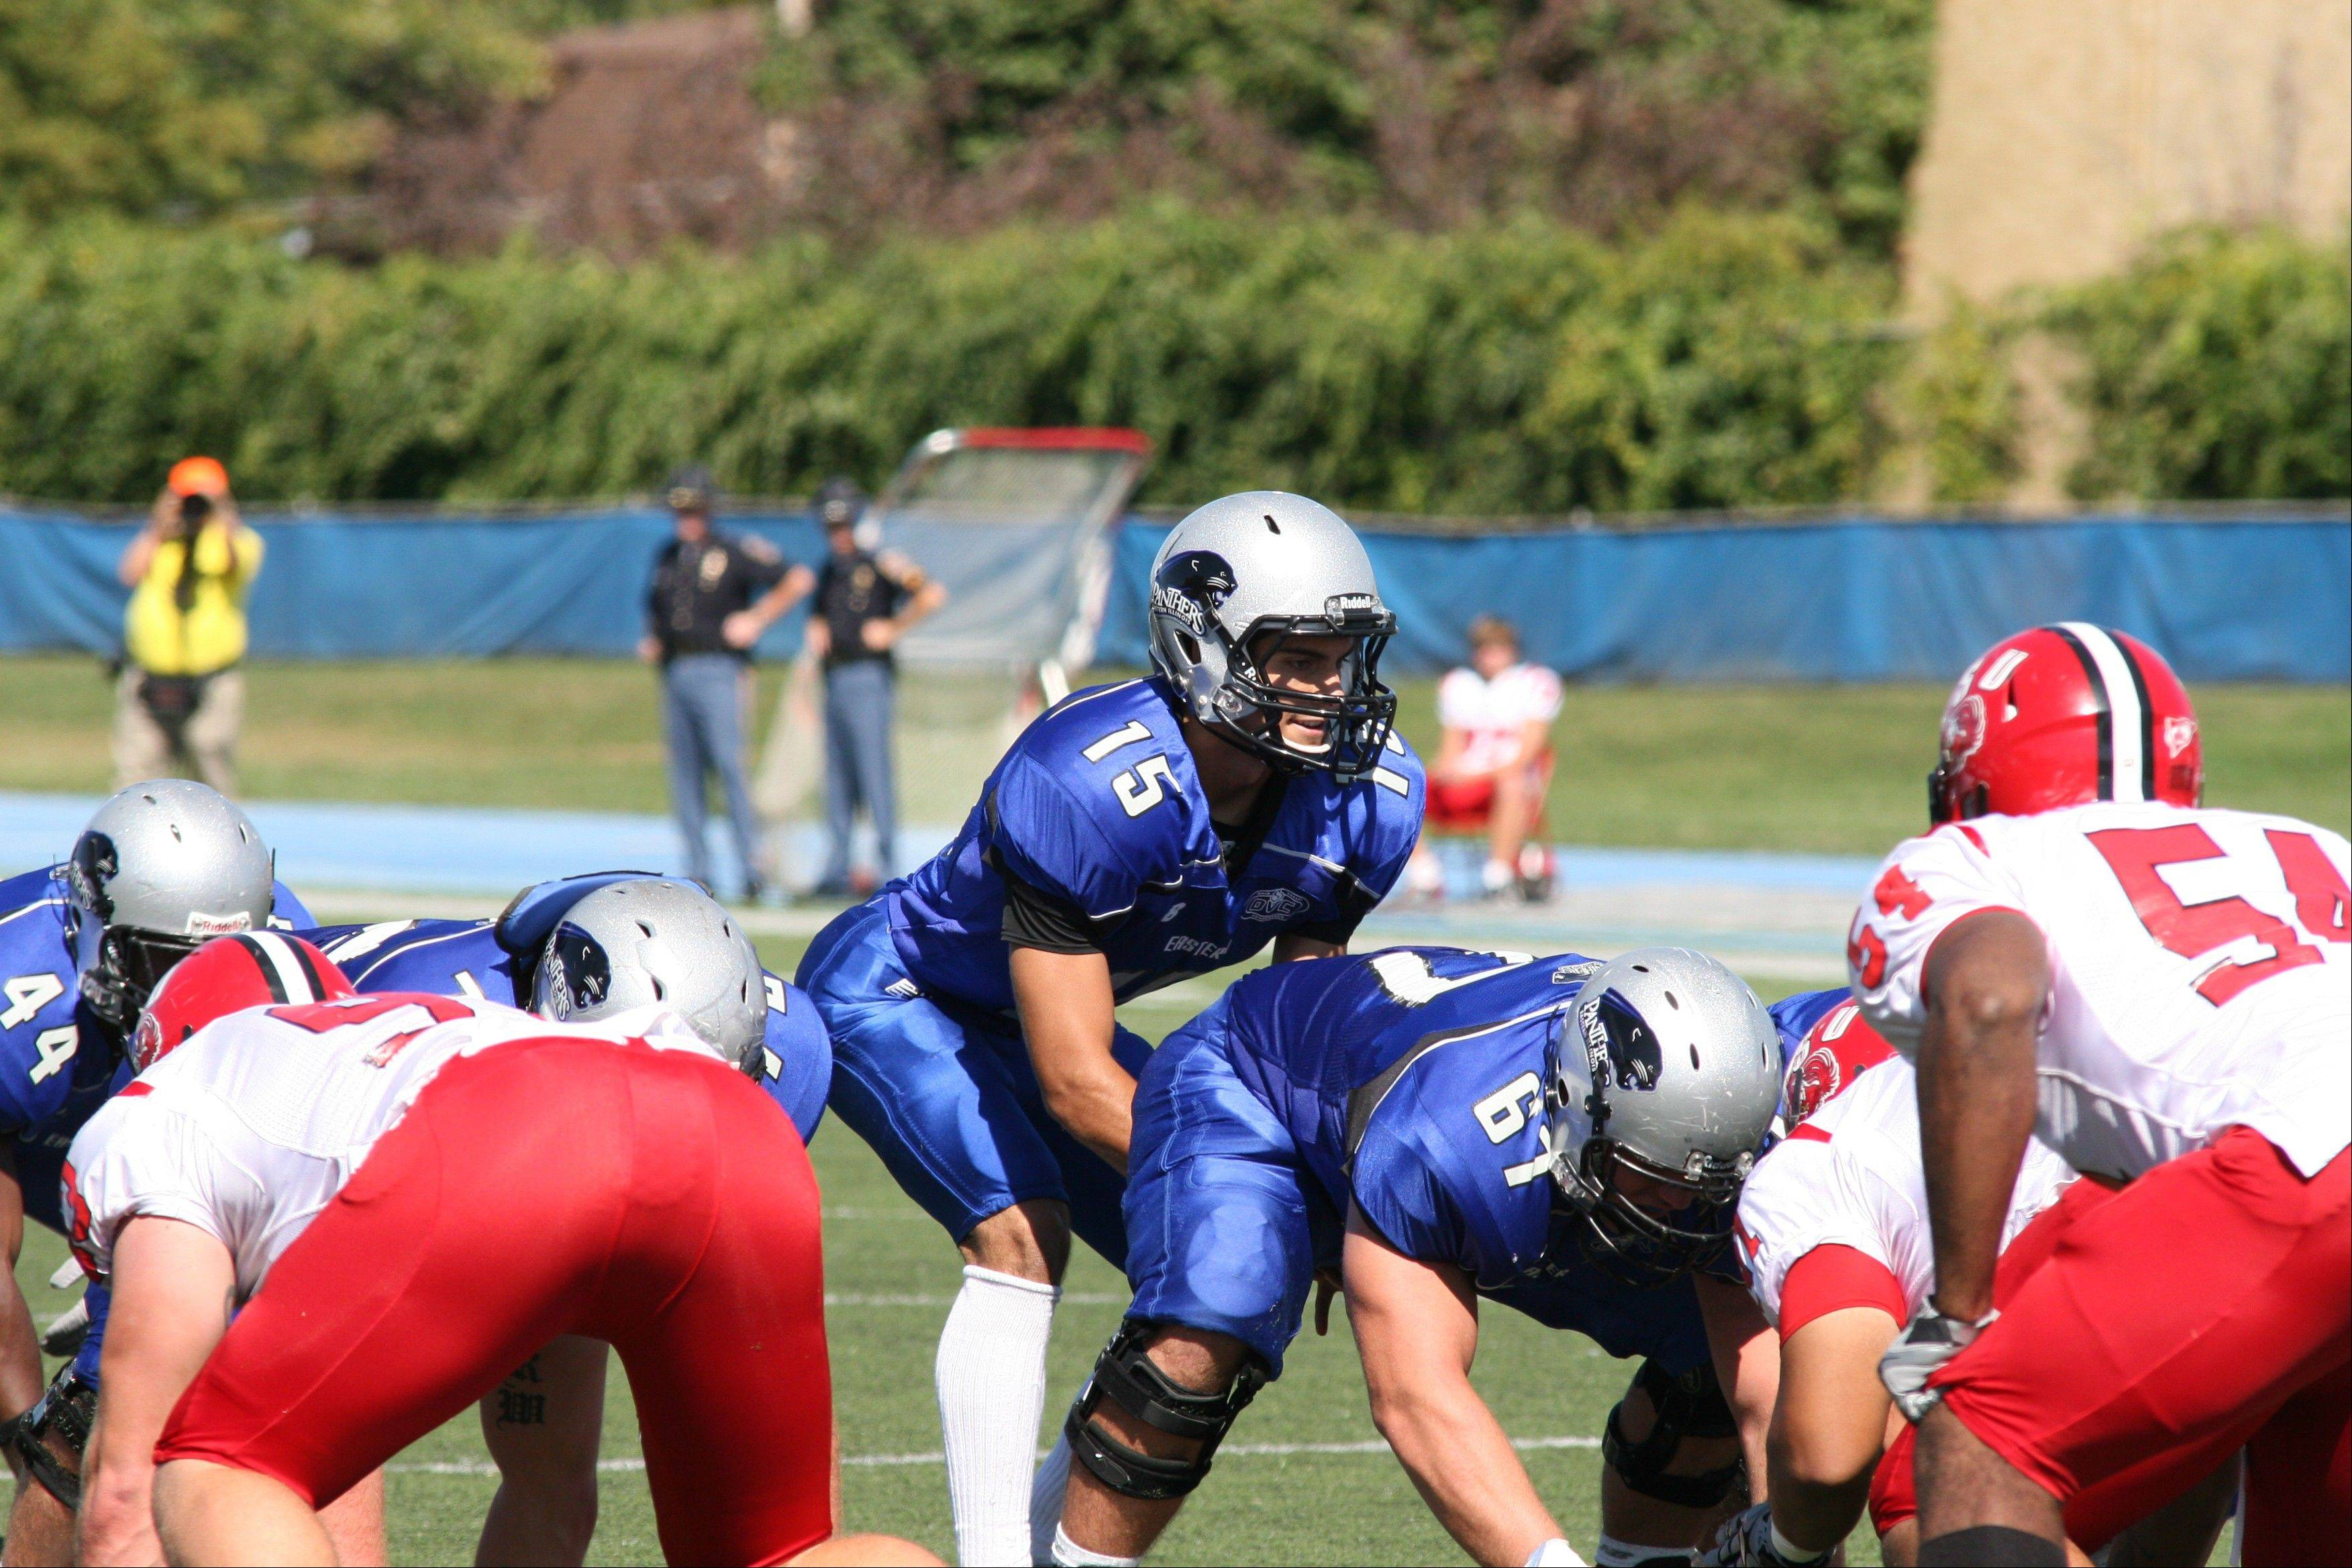 Former Rolling Meadows quarterback Jimmy Garoppolo led the Eastern Illinois Panthers to a thrilling come-from-behind win over Illinois State last weekend. Garoppolo completed 25 of 34 passes for 304 yards and 3 TDs in the 33-26 victory. Northwestern hosts EIU on Saturday.